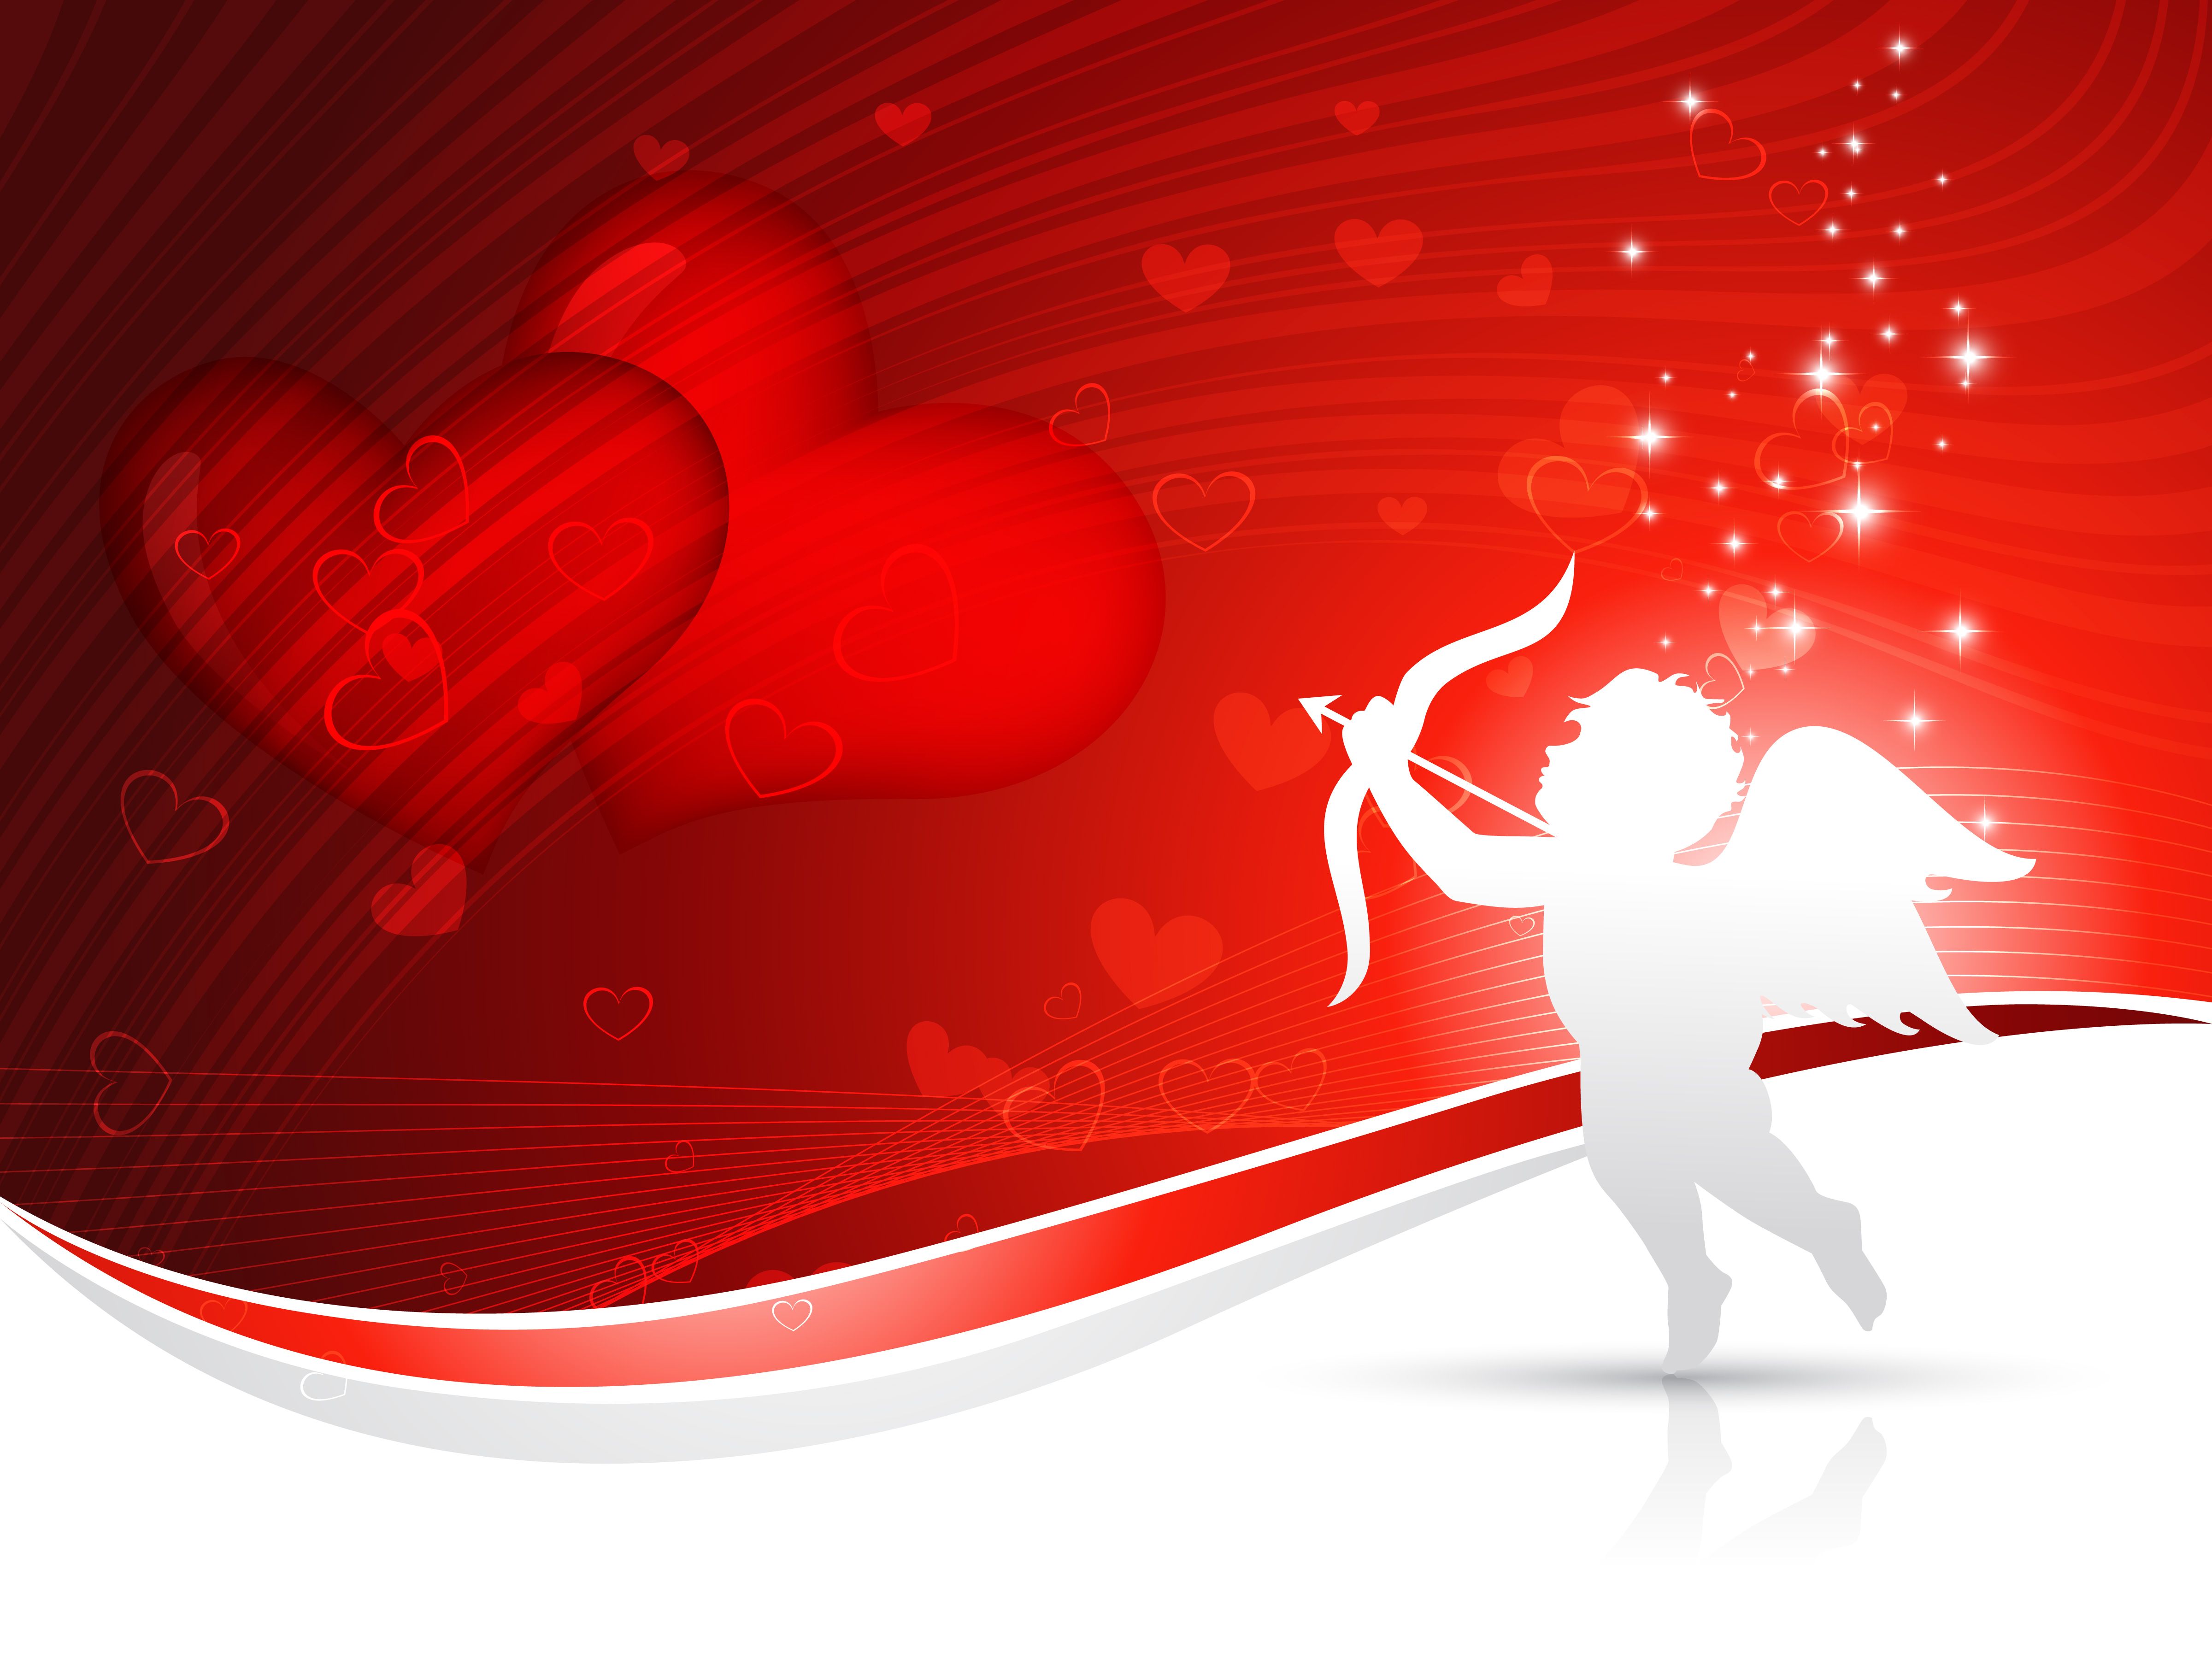 Cupid Vector Free - (6461 Free Downloads)